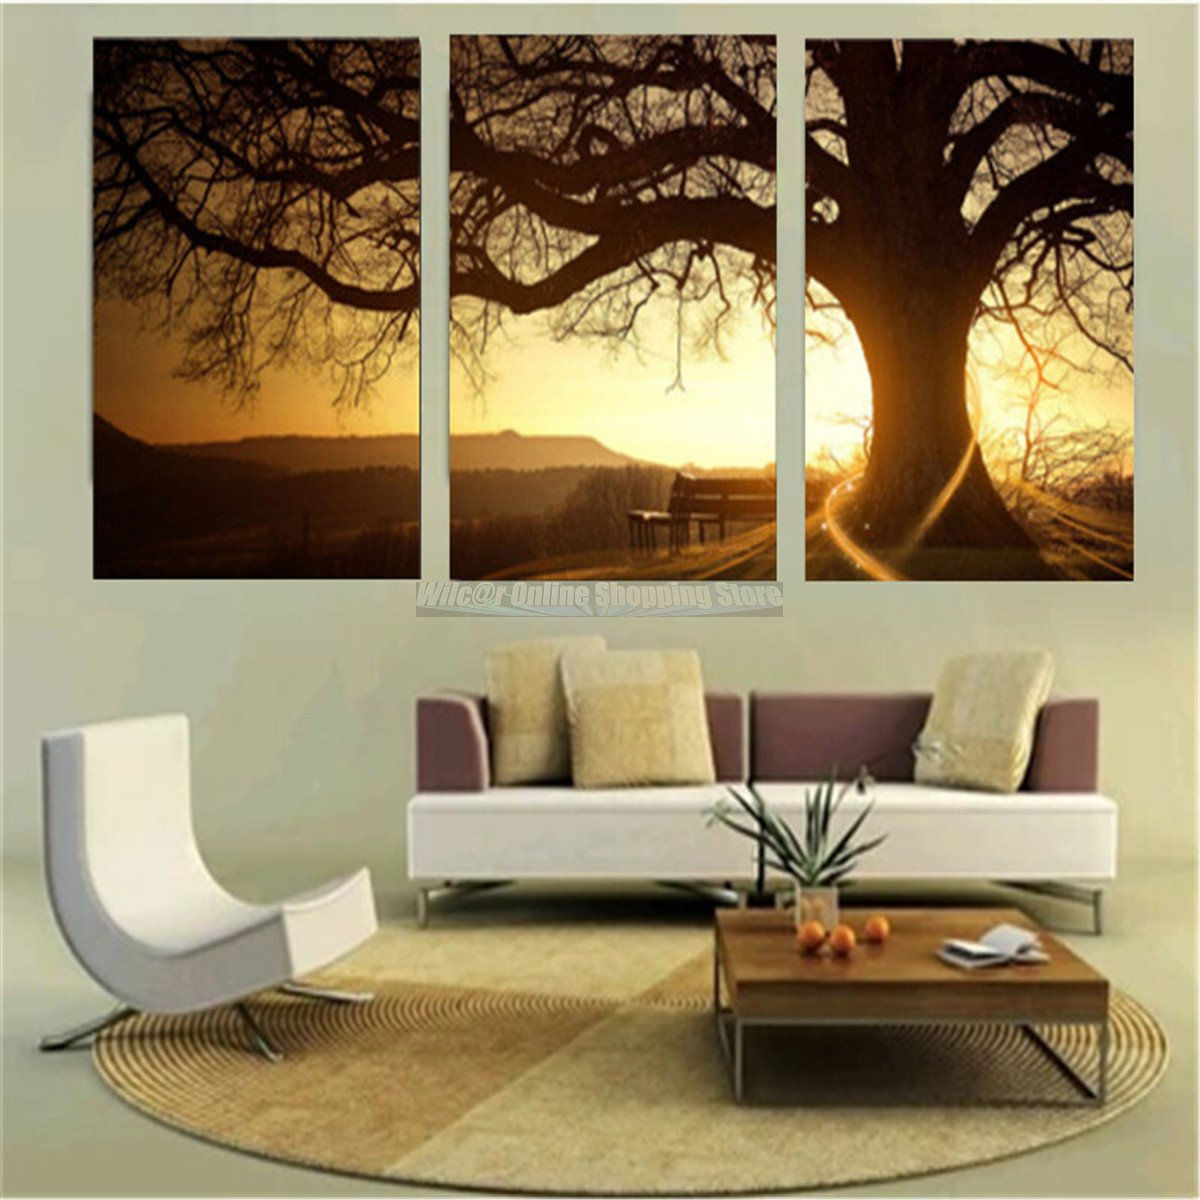 3pcs sunset tree canvas painting print seaside sunset wall decor art no frame ebay. Black Bedroom Furniture Sets. Home Design Ideas